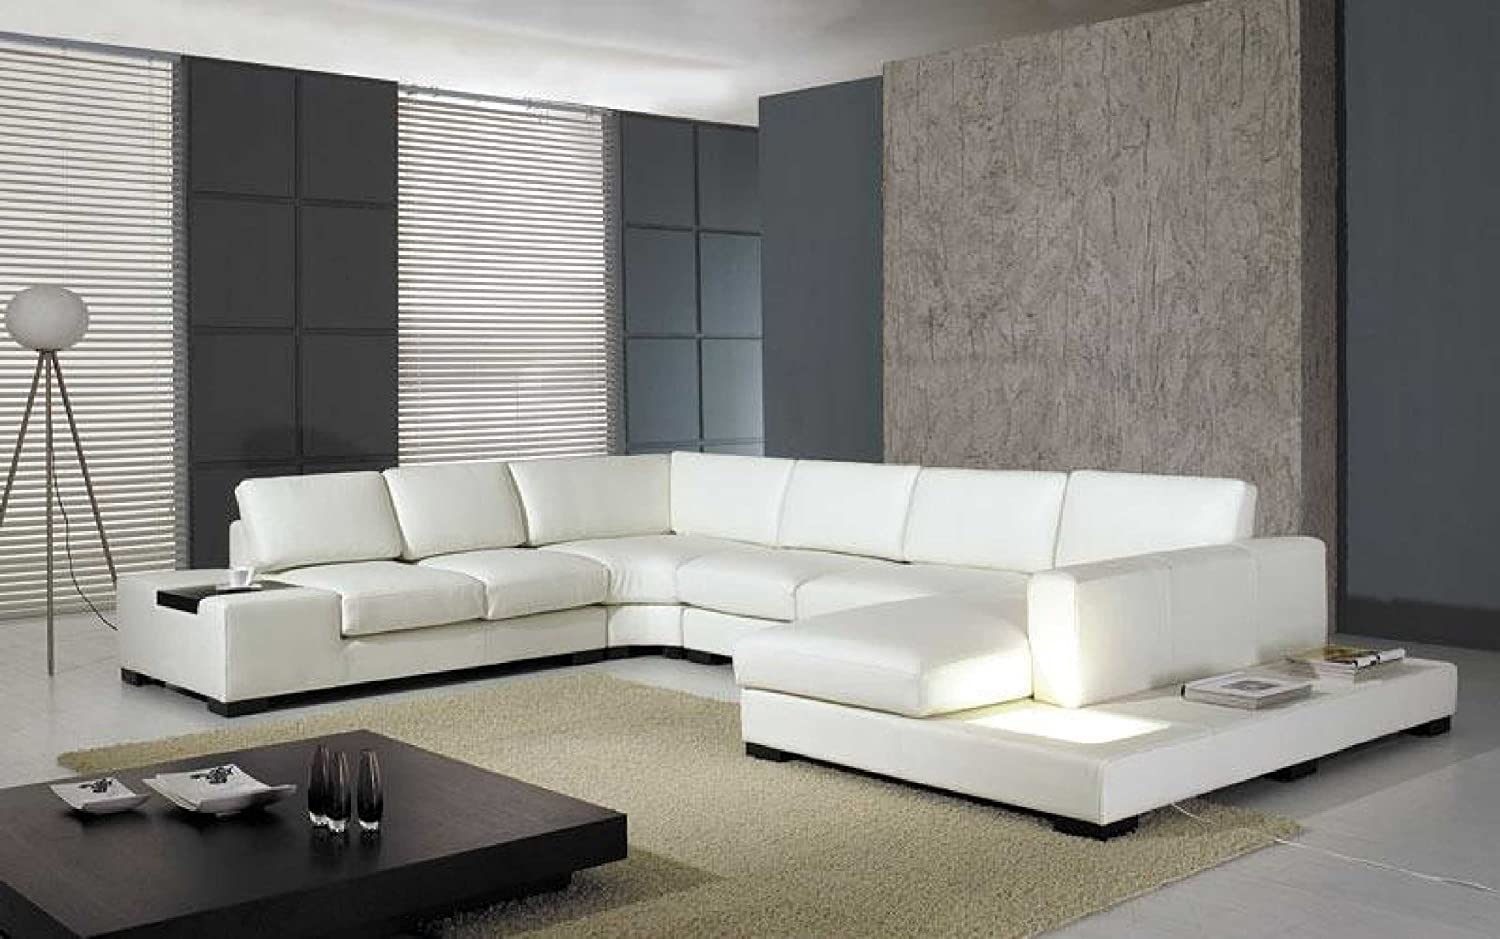 Amazon.com: T35   White Bonded Leather Sectional Sofa Set With Light:  Kitchen U0026 Dining Part 78